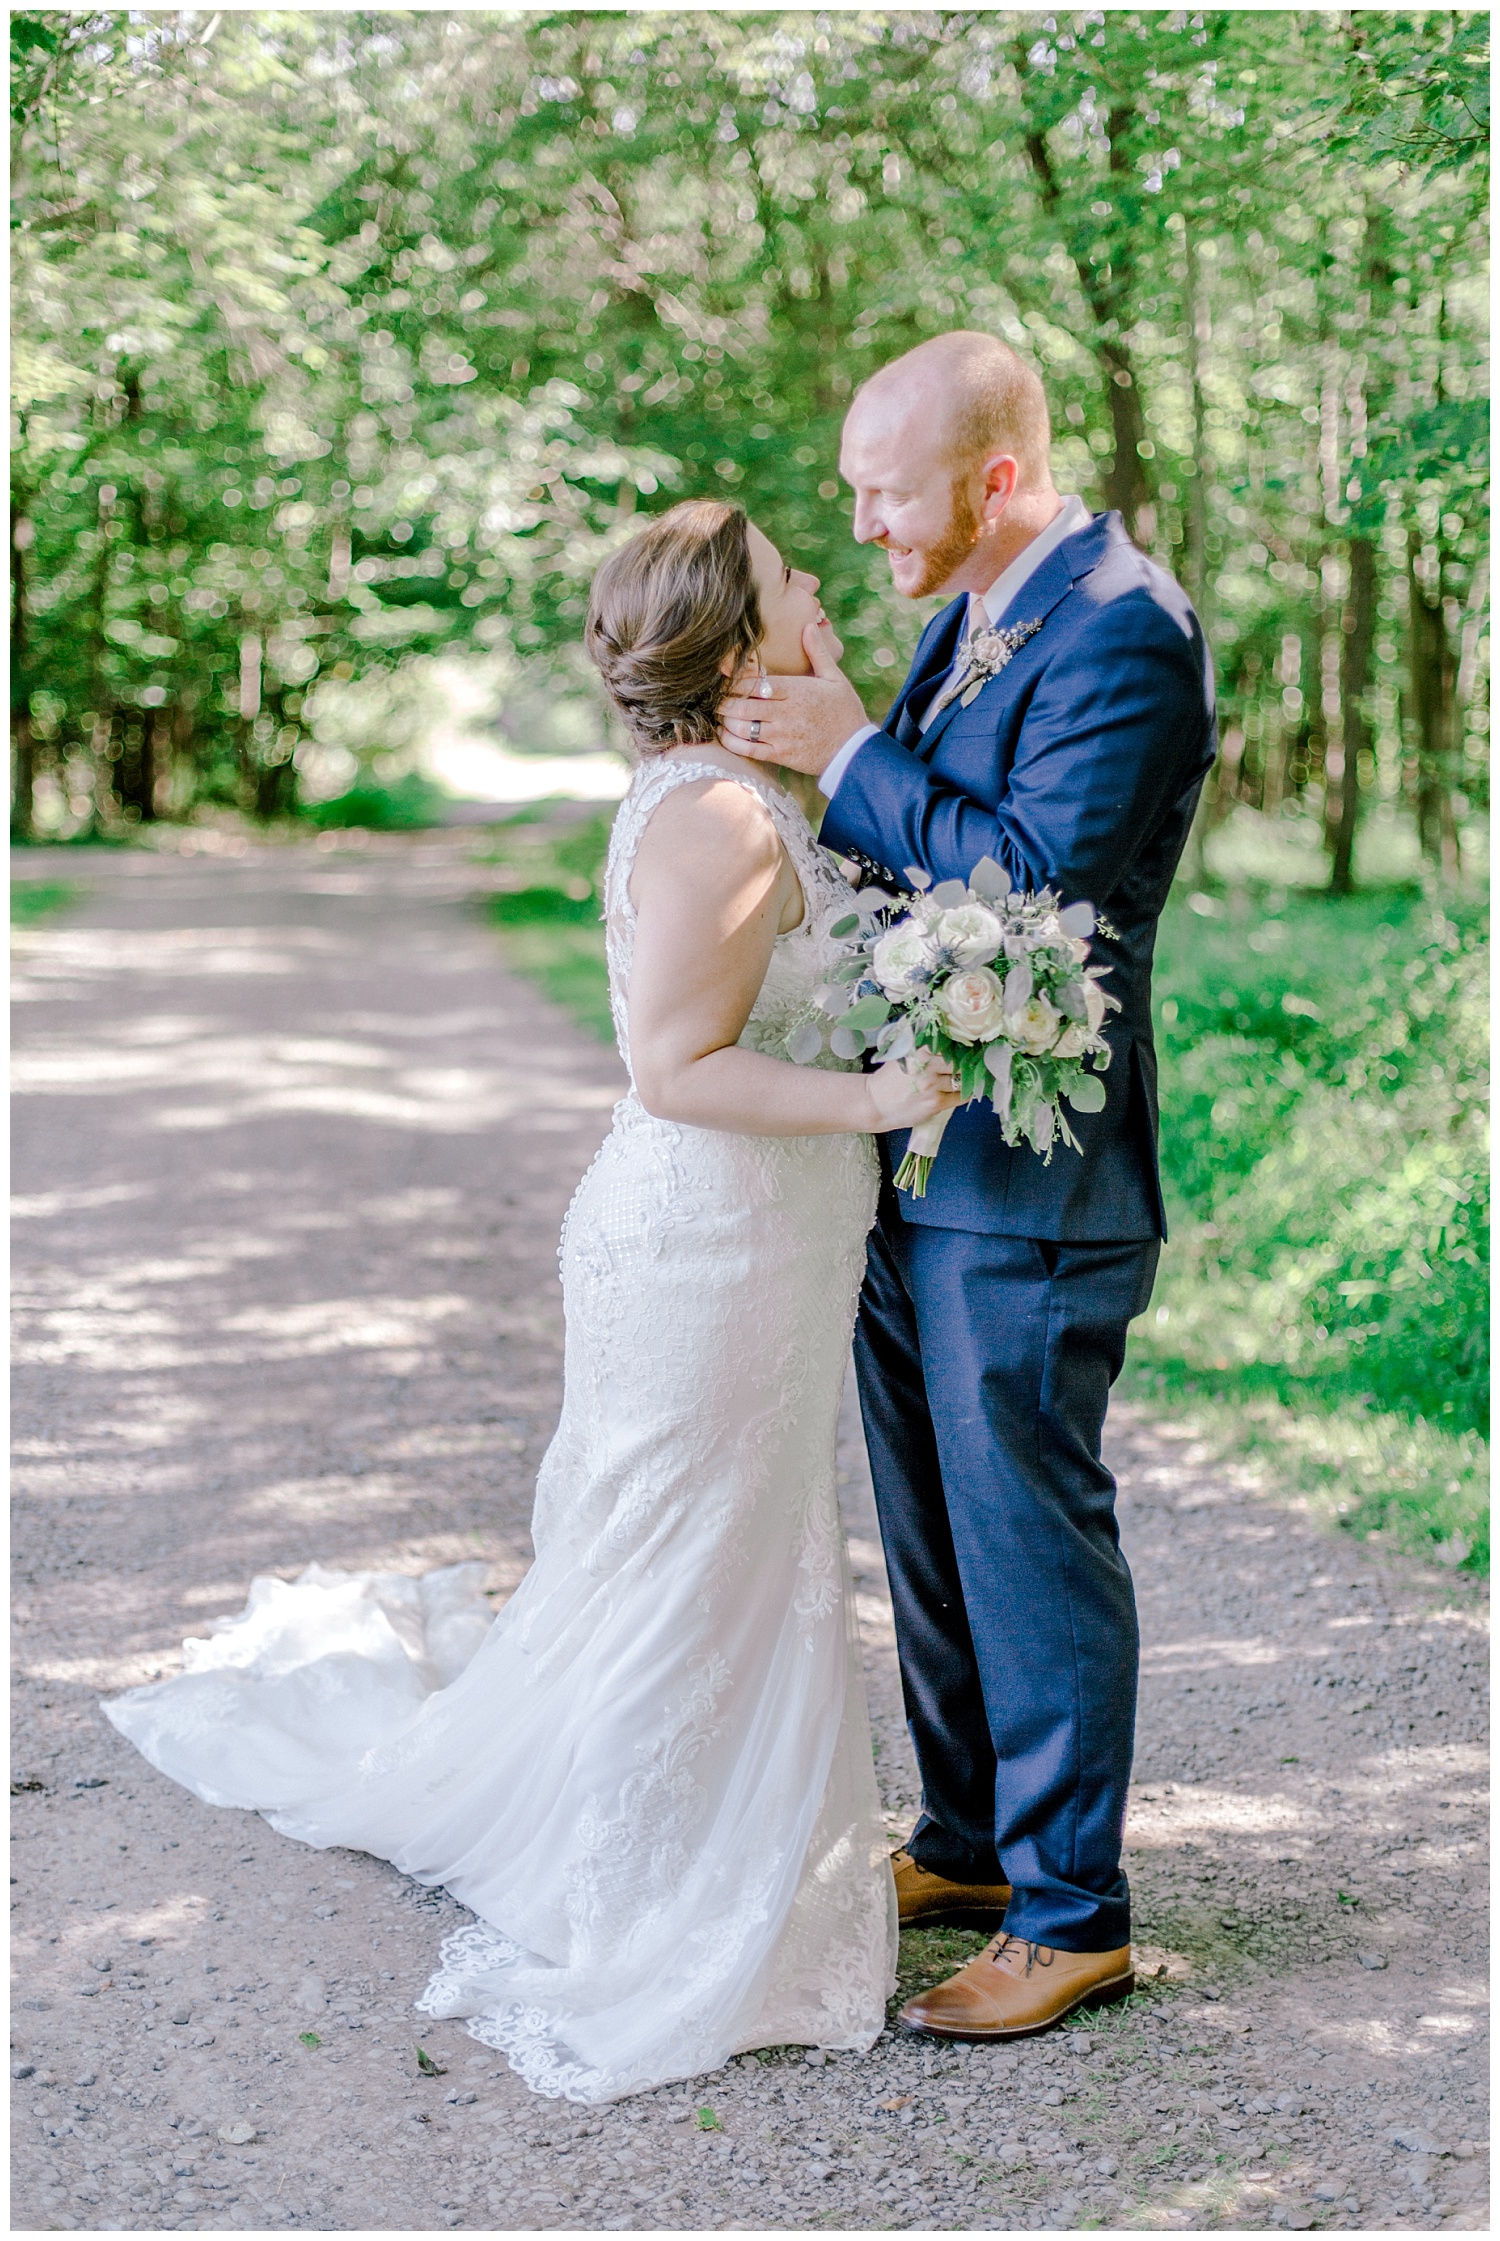 Navy and Blush pink inspired summertime whitewoods wedding in Northeastern Pennsylvania NEPA wapwallopen wedding venue by  PA based wedding and lifestyle photographer Lytle photography_0037.jpg